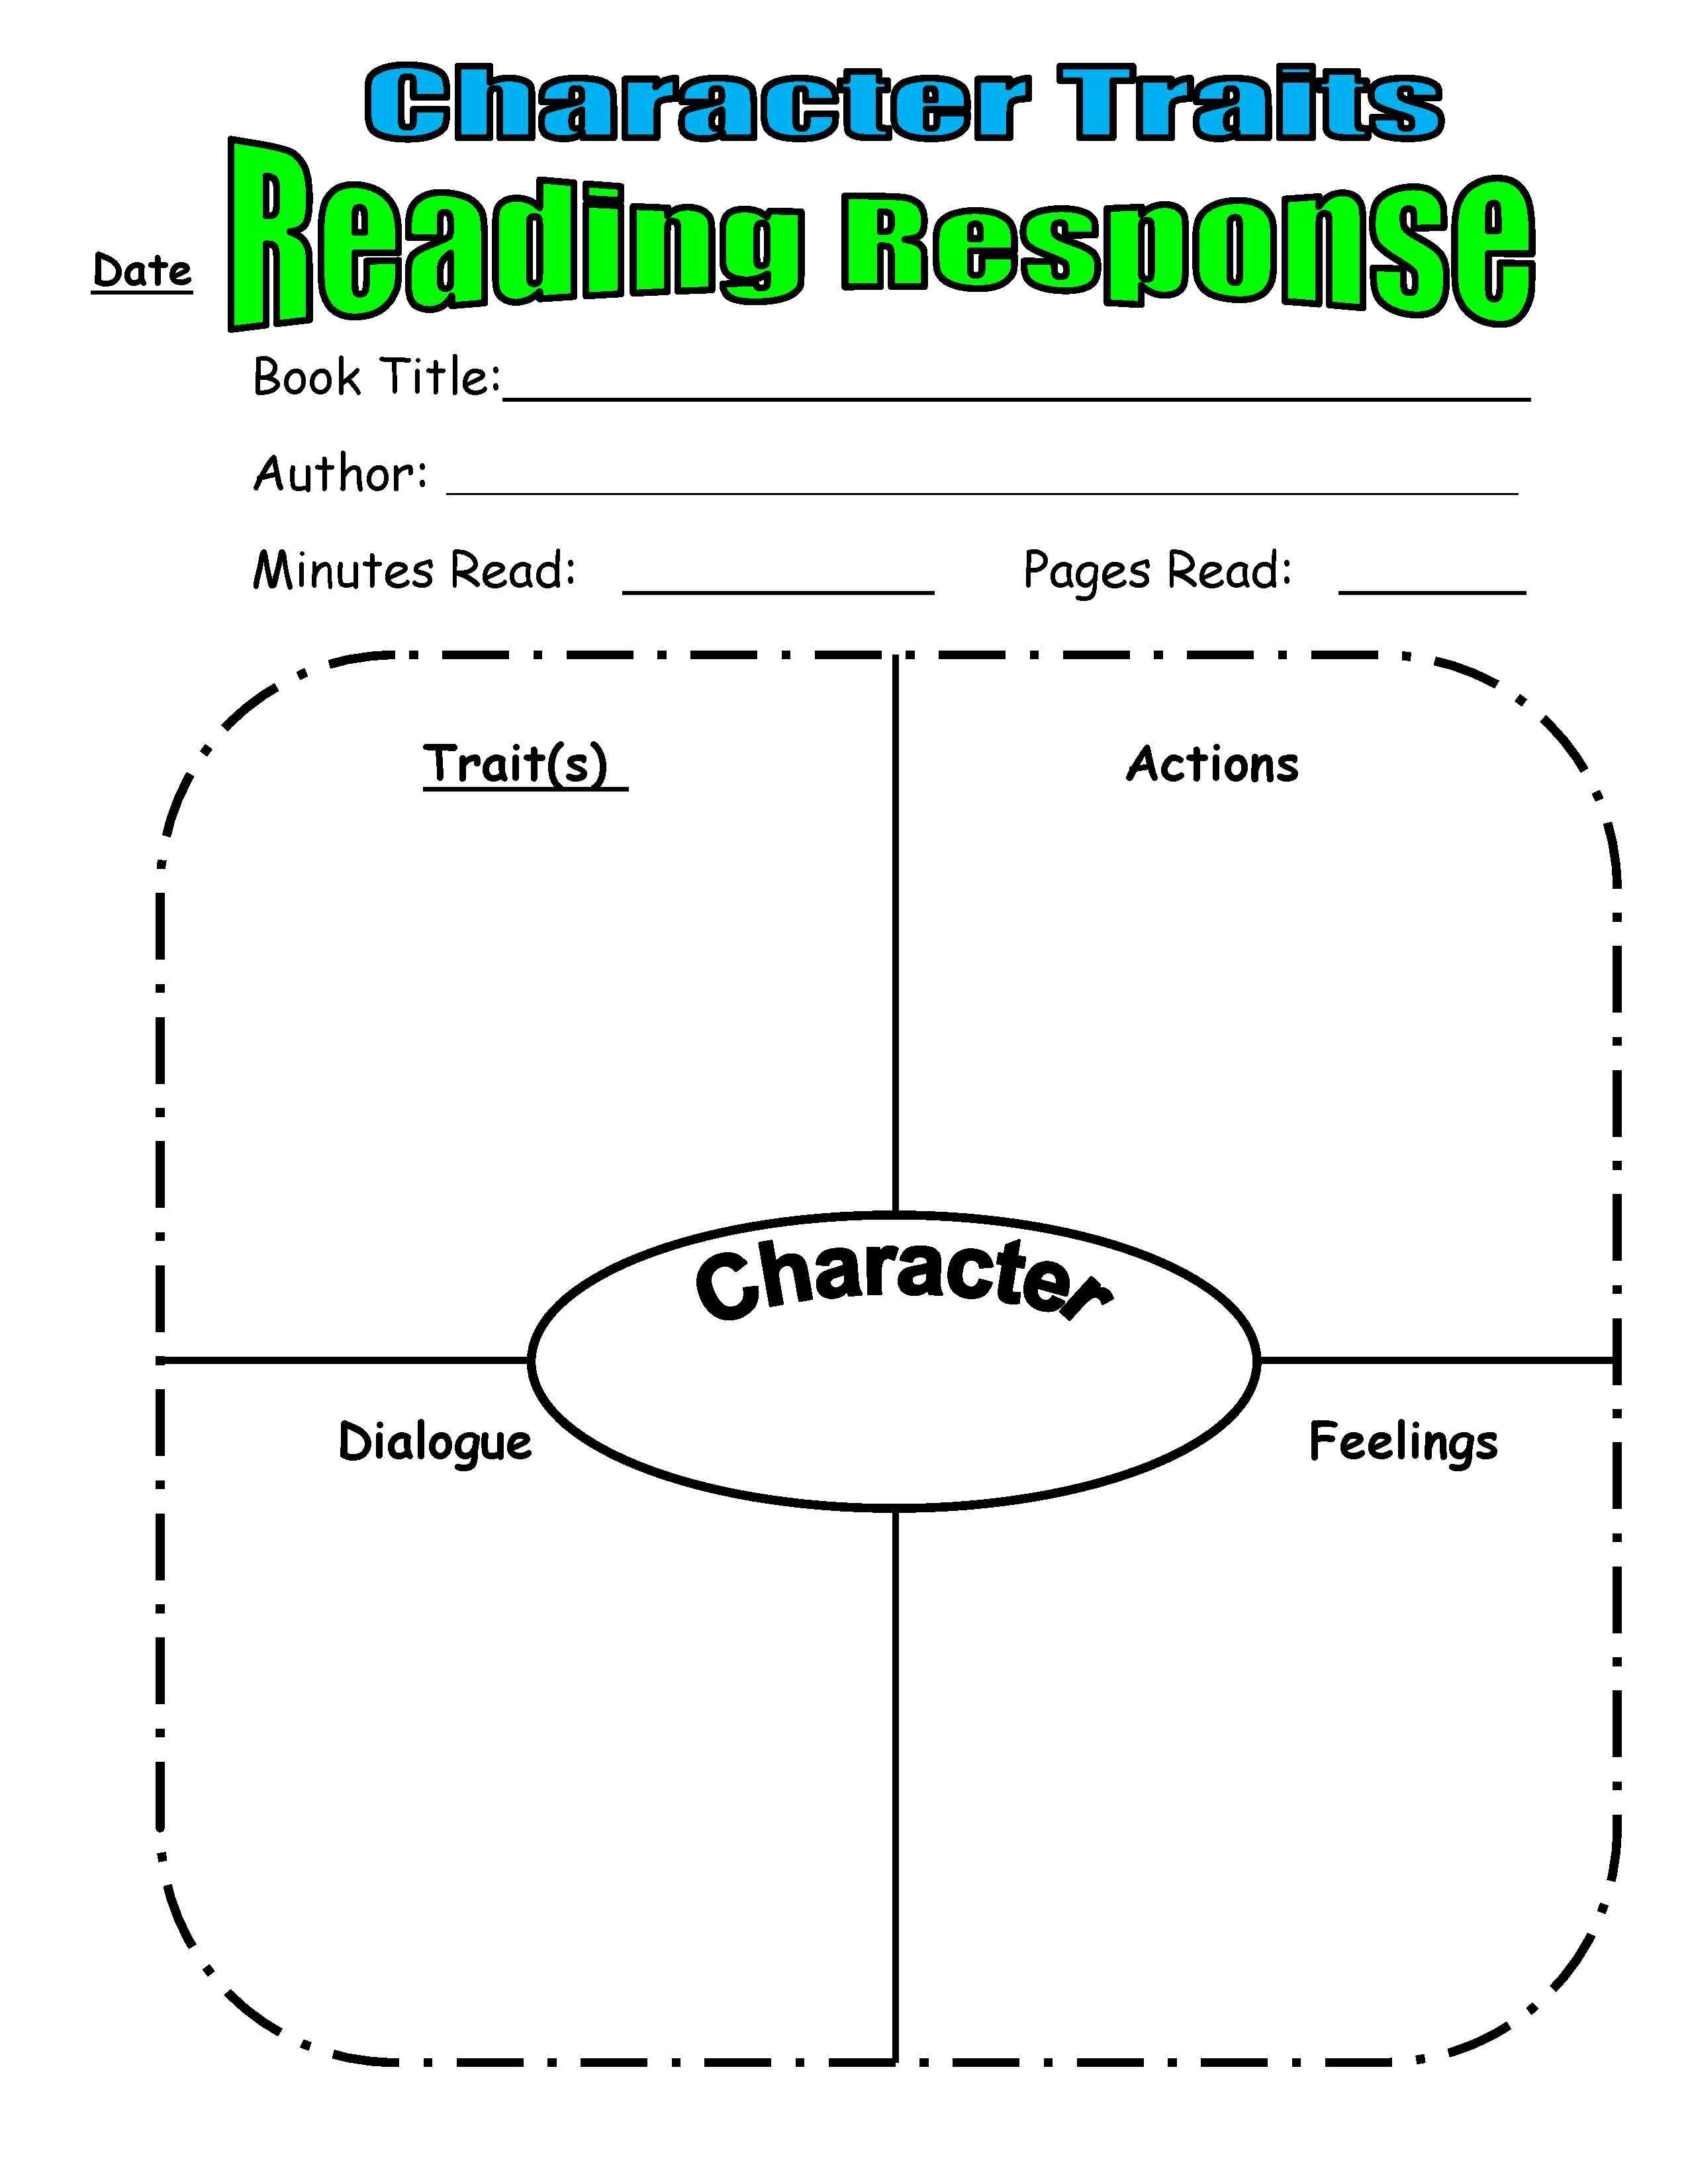 Teaching Character Traits In Reader's Workshop | Scholastic - Free Printable Character Map